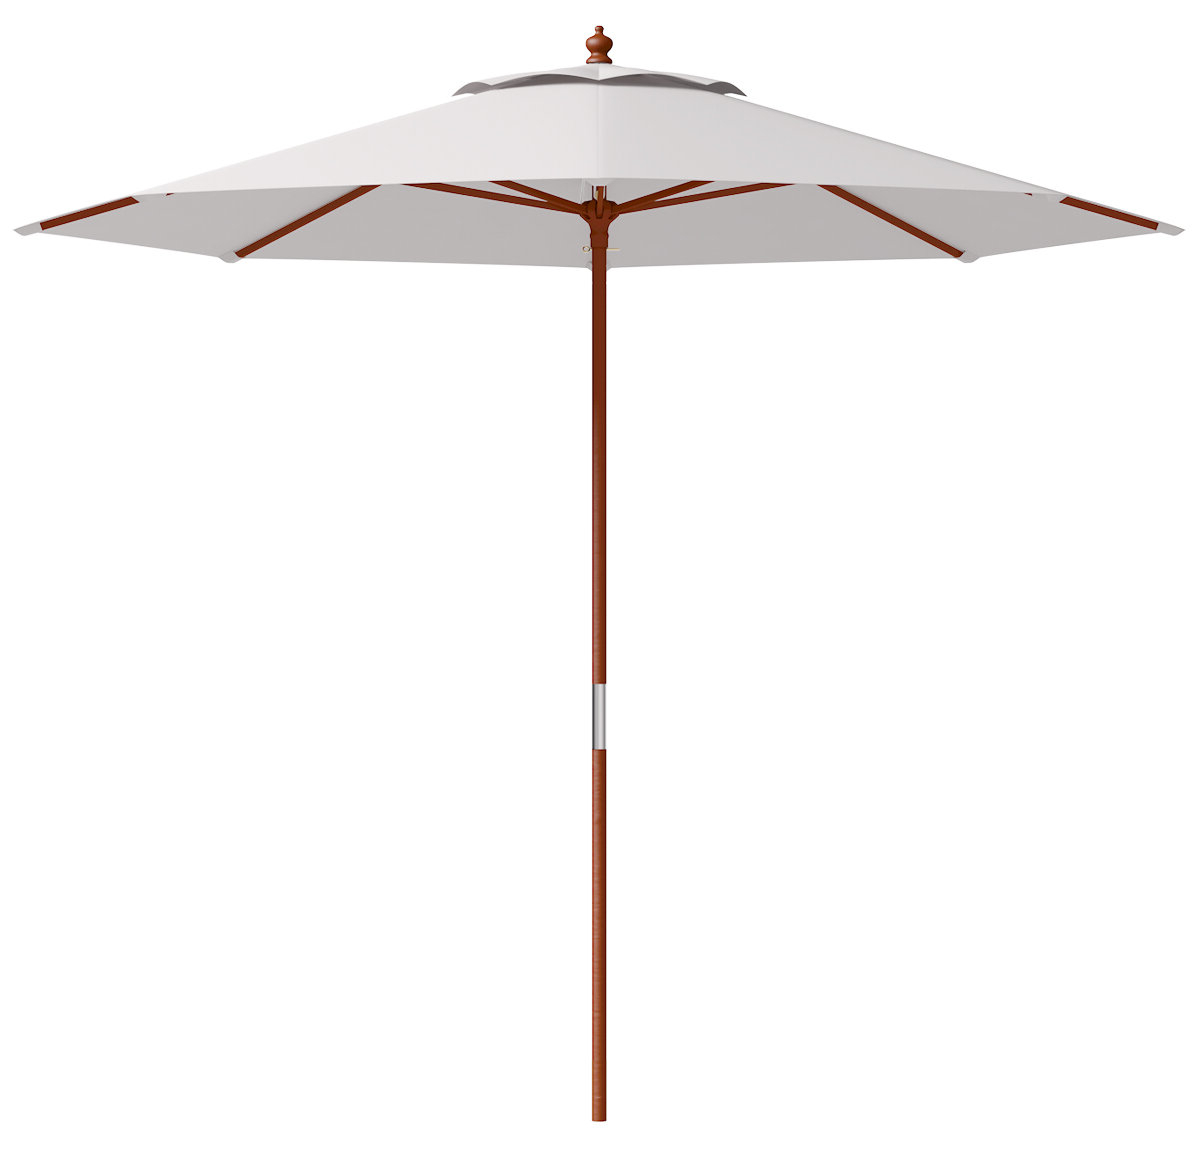 Preferred Santoro 9' Beach Umbrella Regarding Hyperion Beach Umbrellas (View 19 of 20)